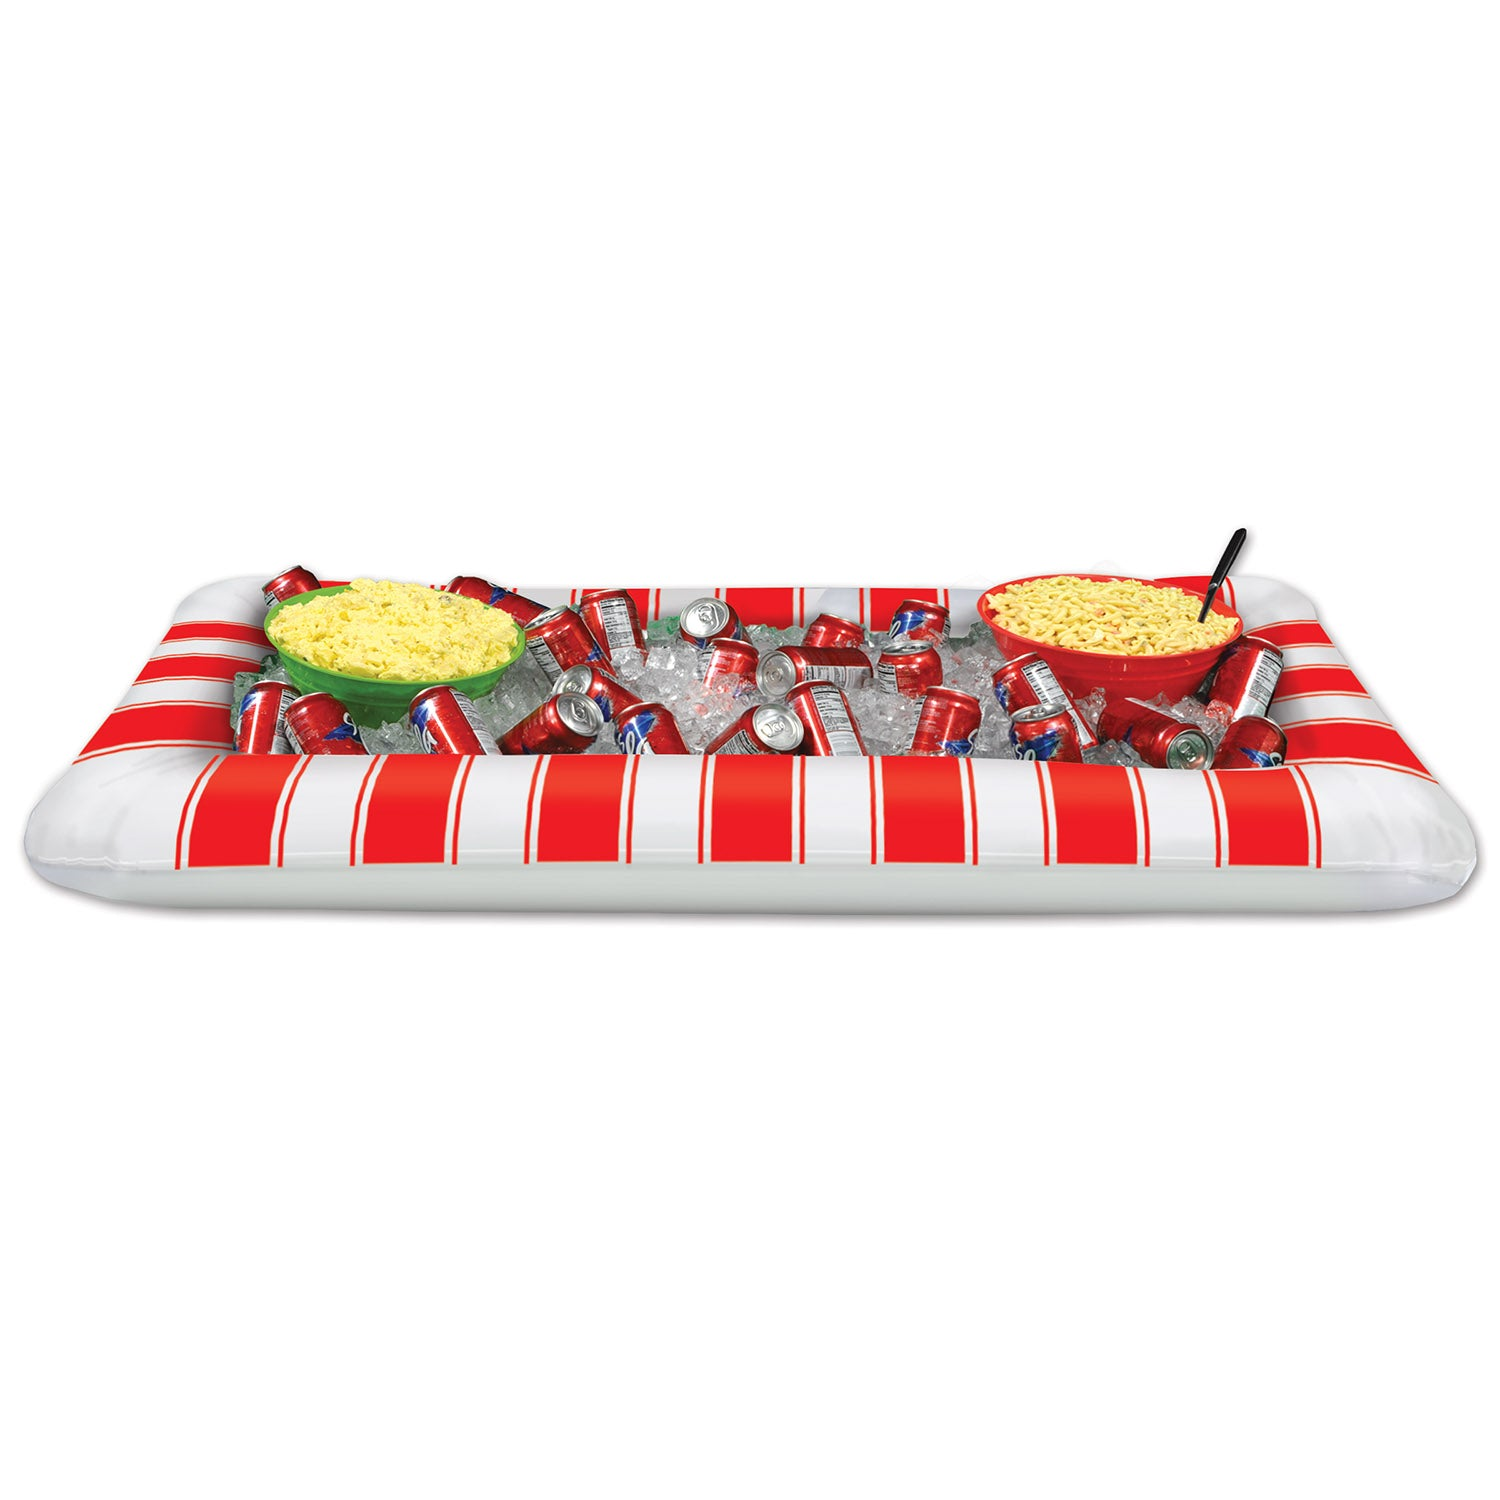 Inflatable Red&White Stripes Buffet Clr by Beistle - Circus Theme Decorations